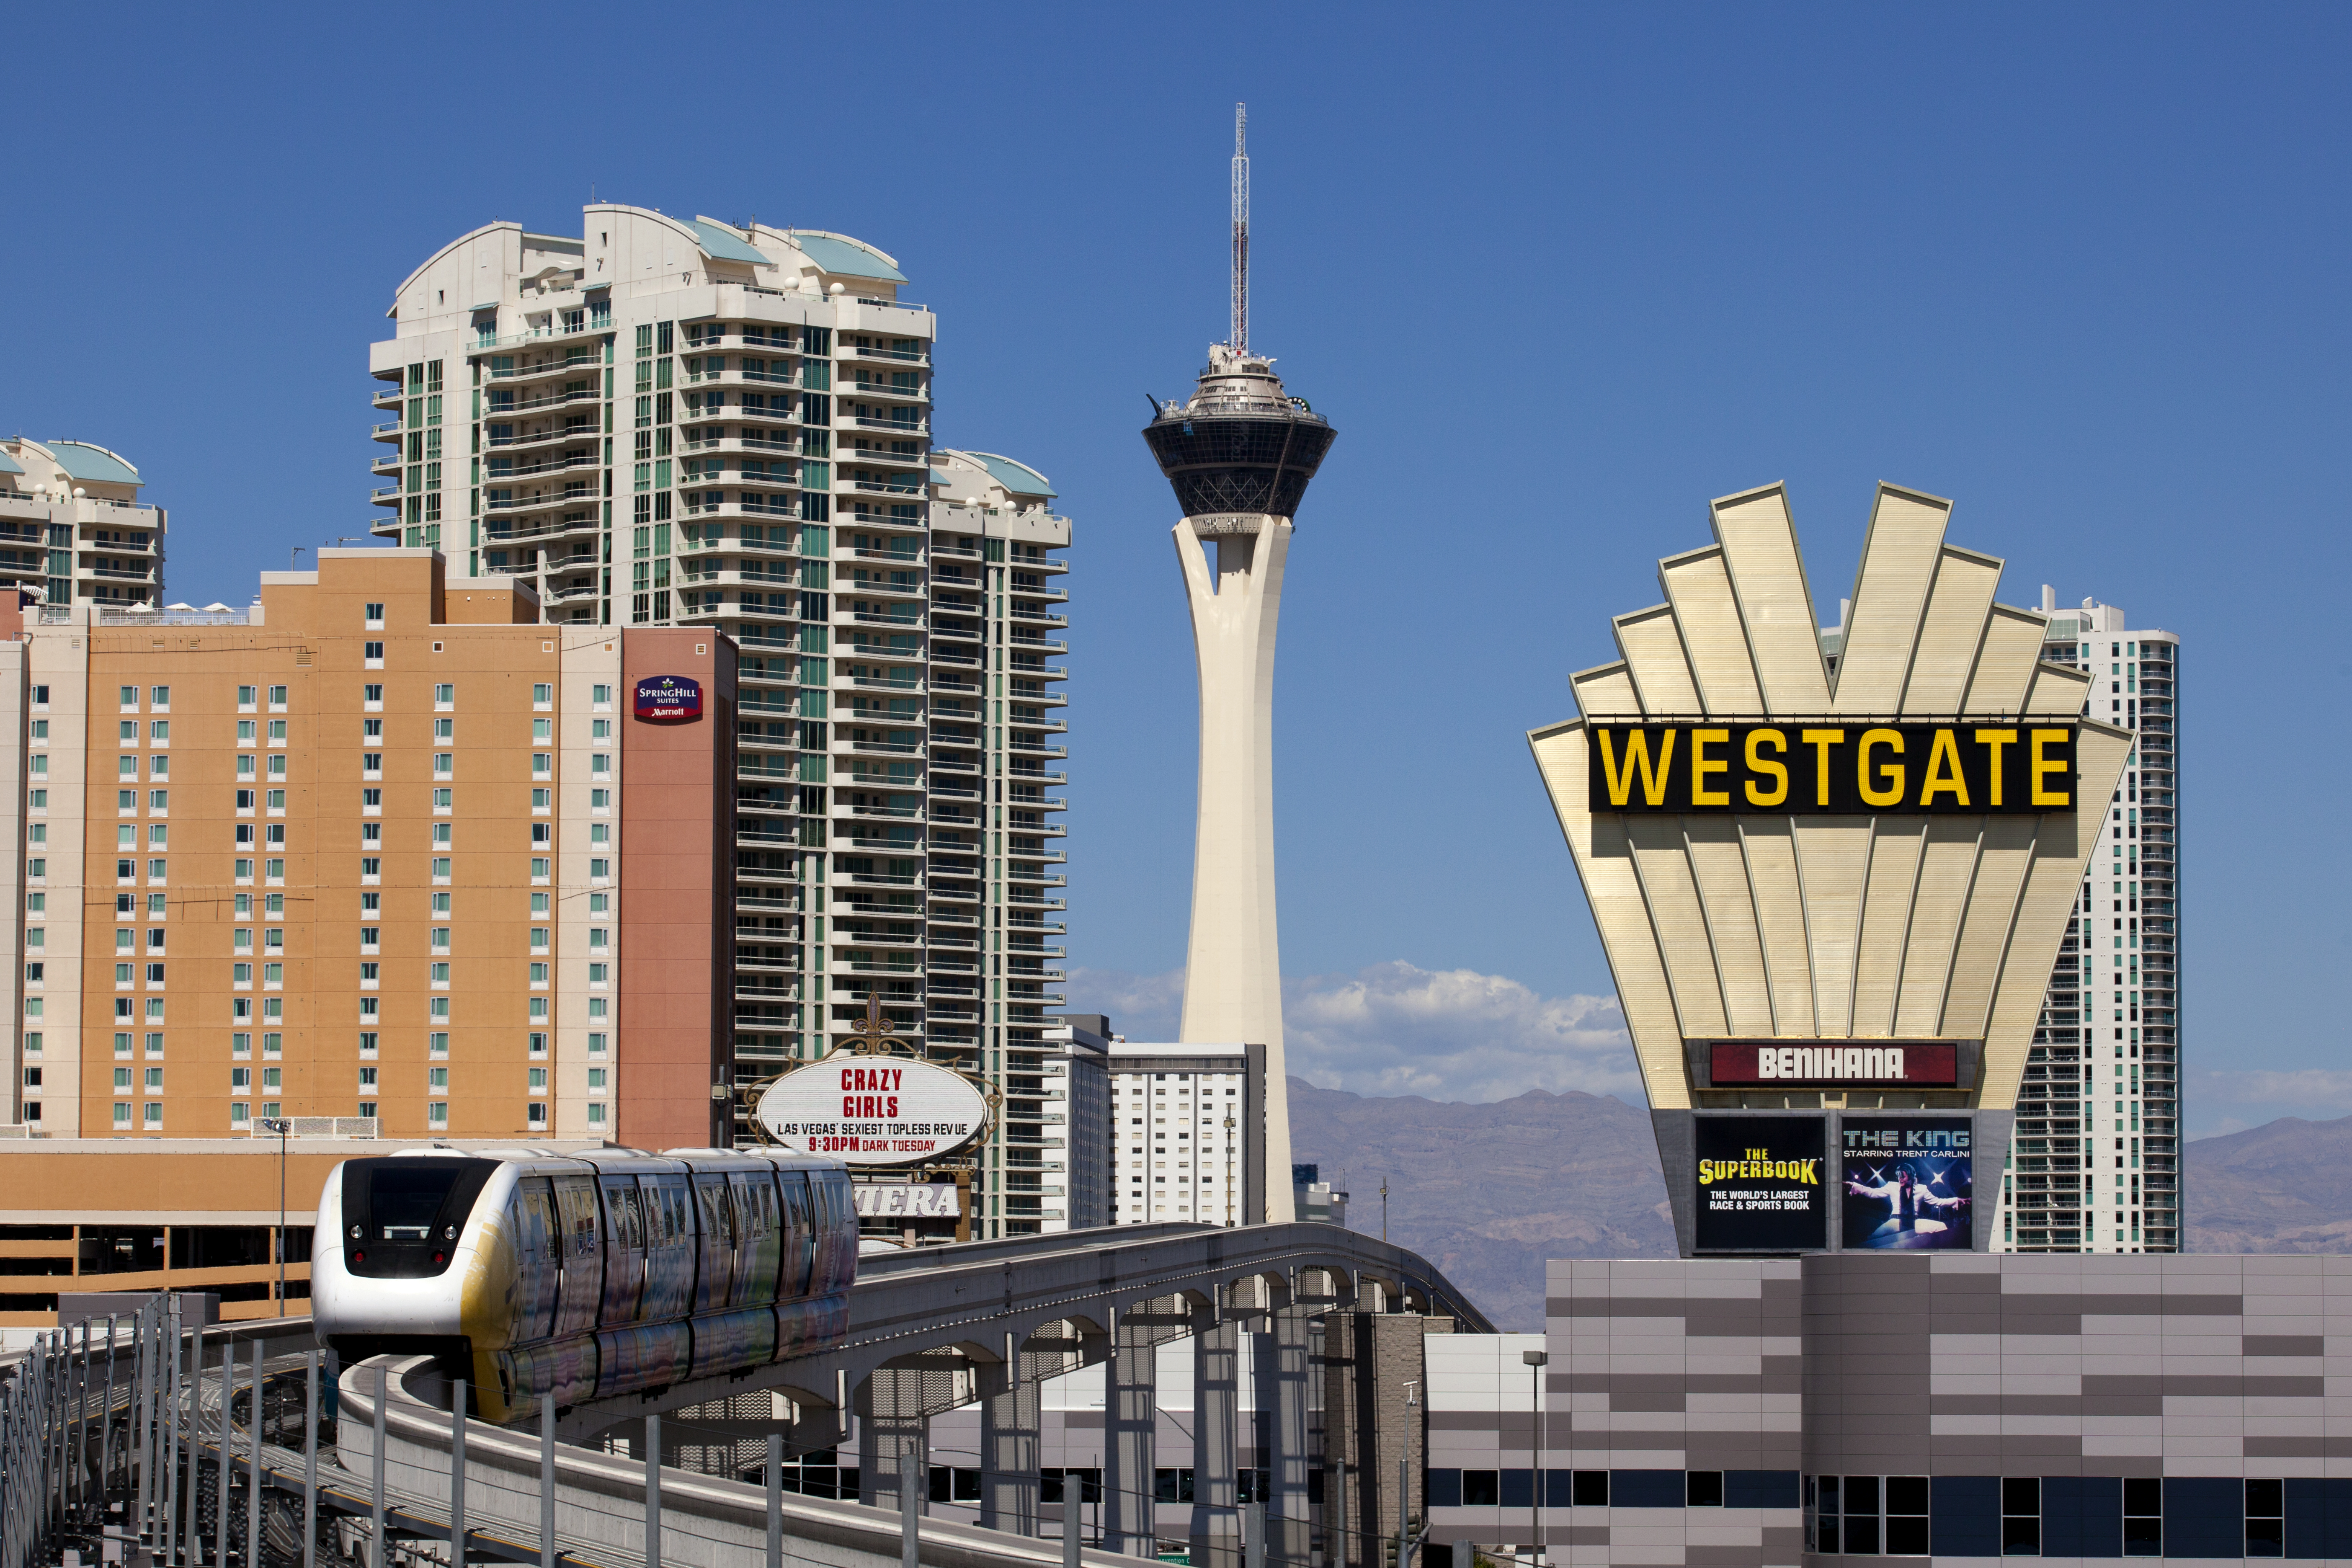 The Las Vegas monorail, with the Westgate Casino and the Stratosphere tower in the background.